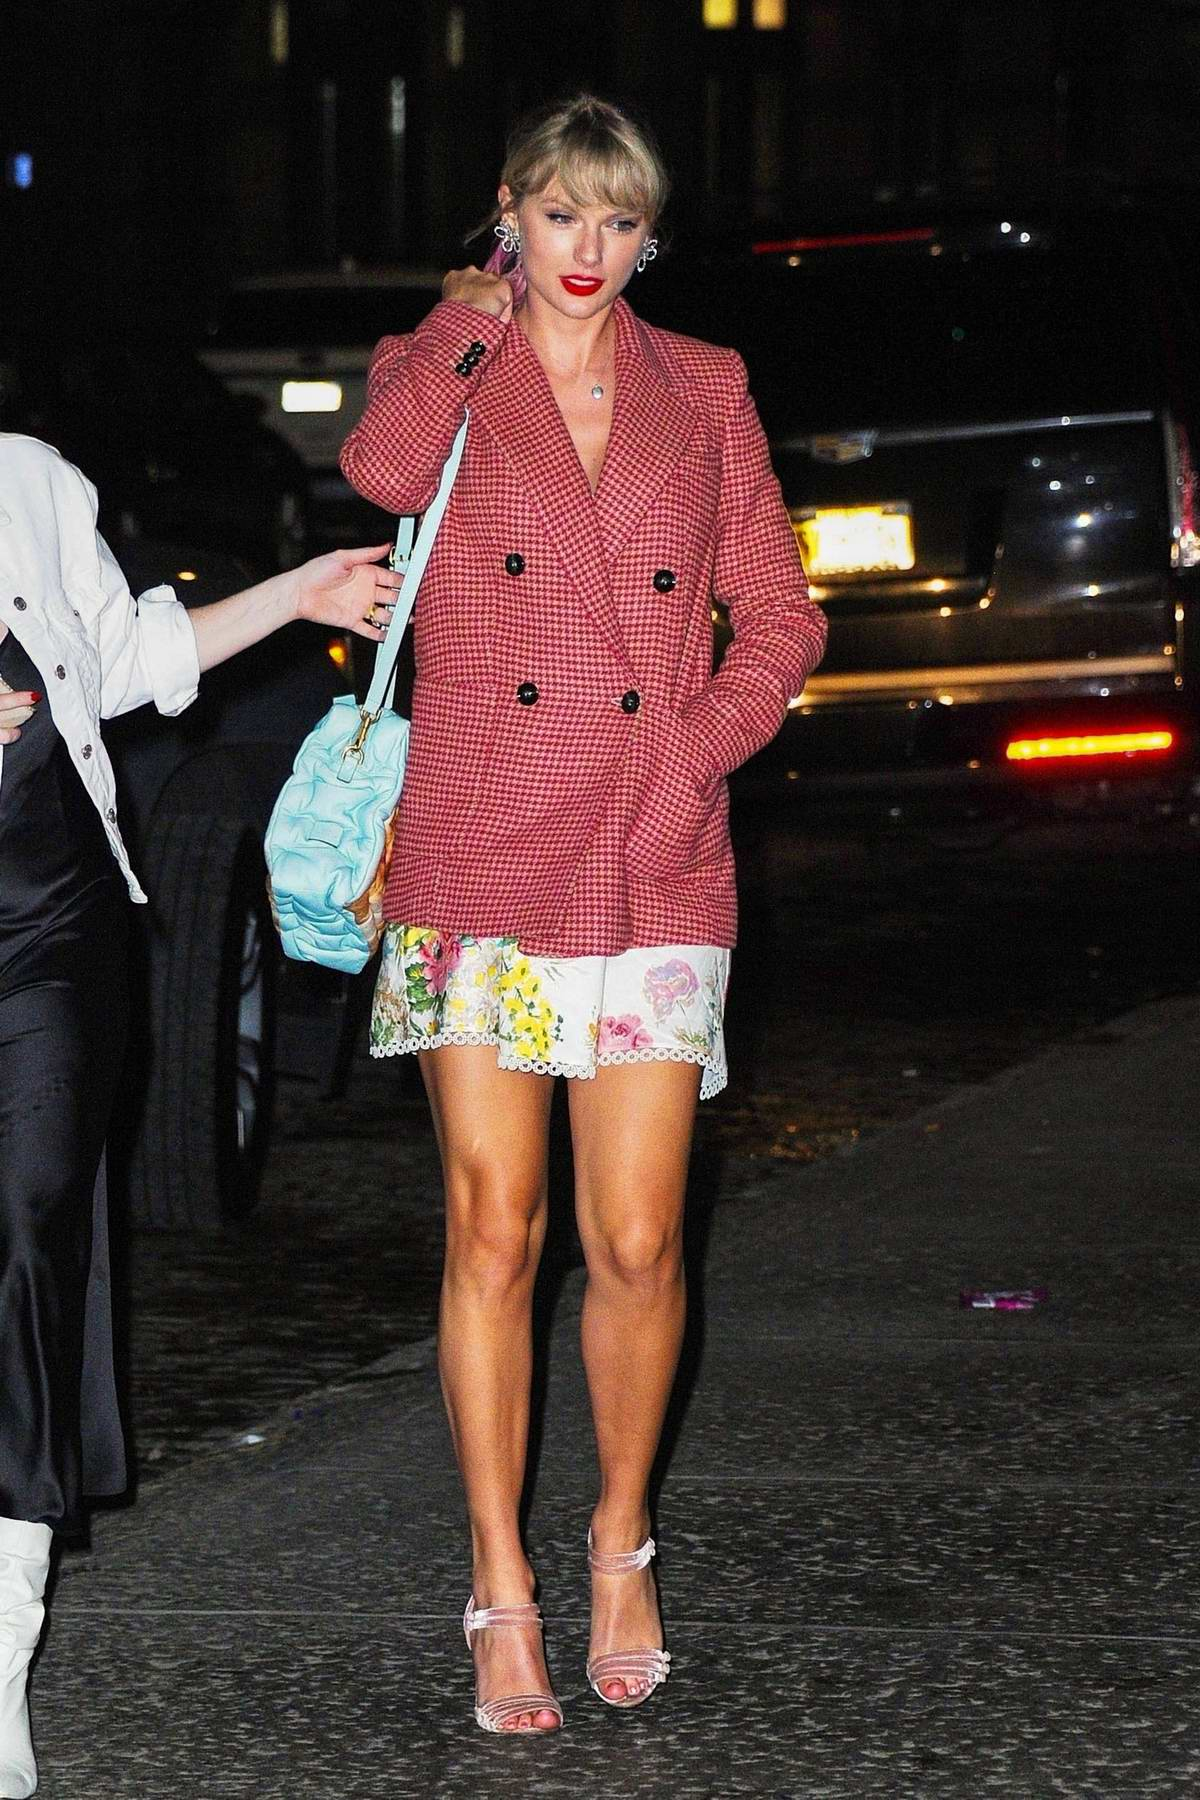 Taylor Swift spotted in a red tweed blazer over a floral mini dress as she returns home from Gigi Hadid's birthday in New York City